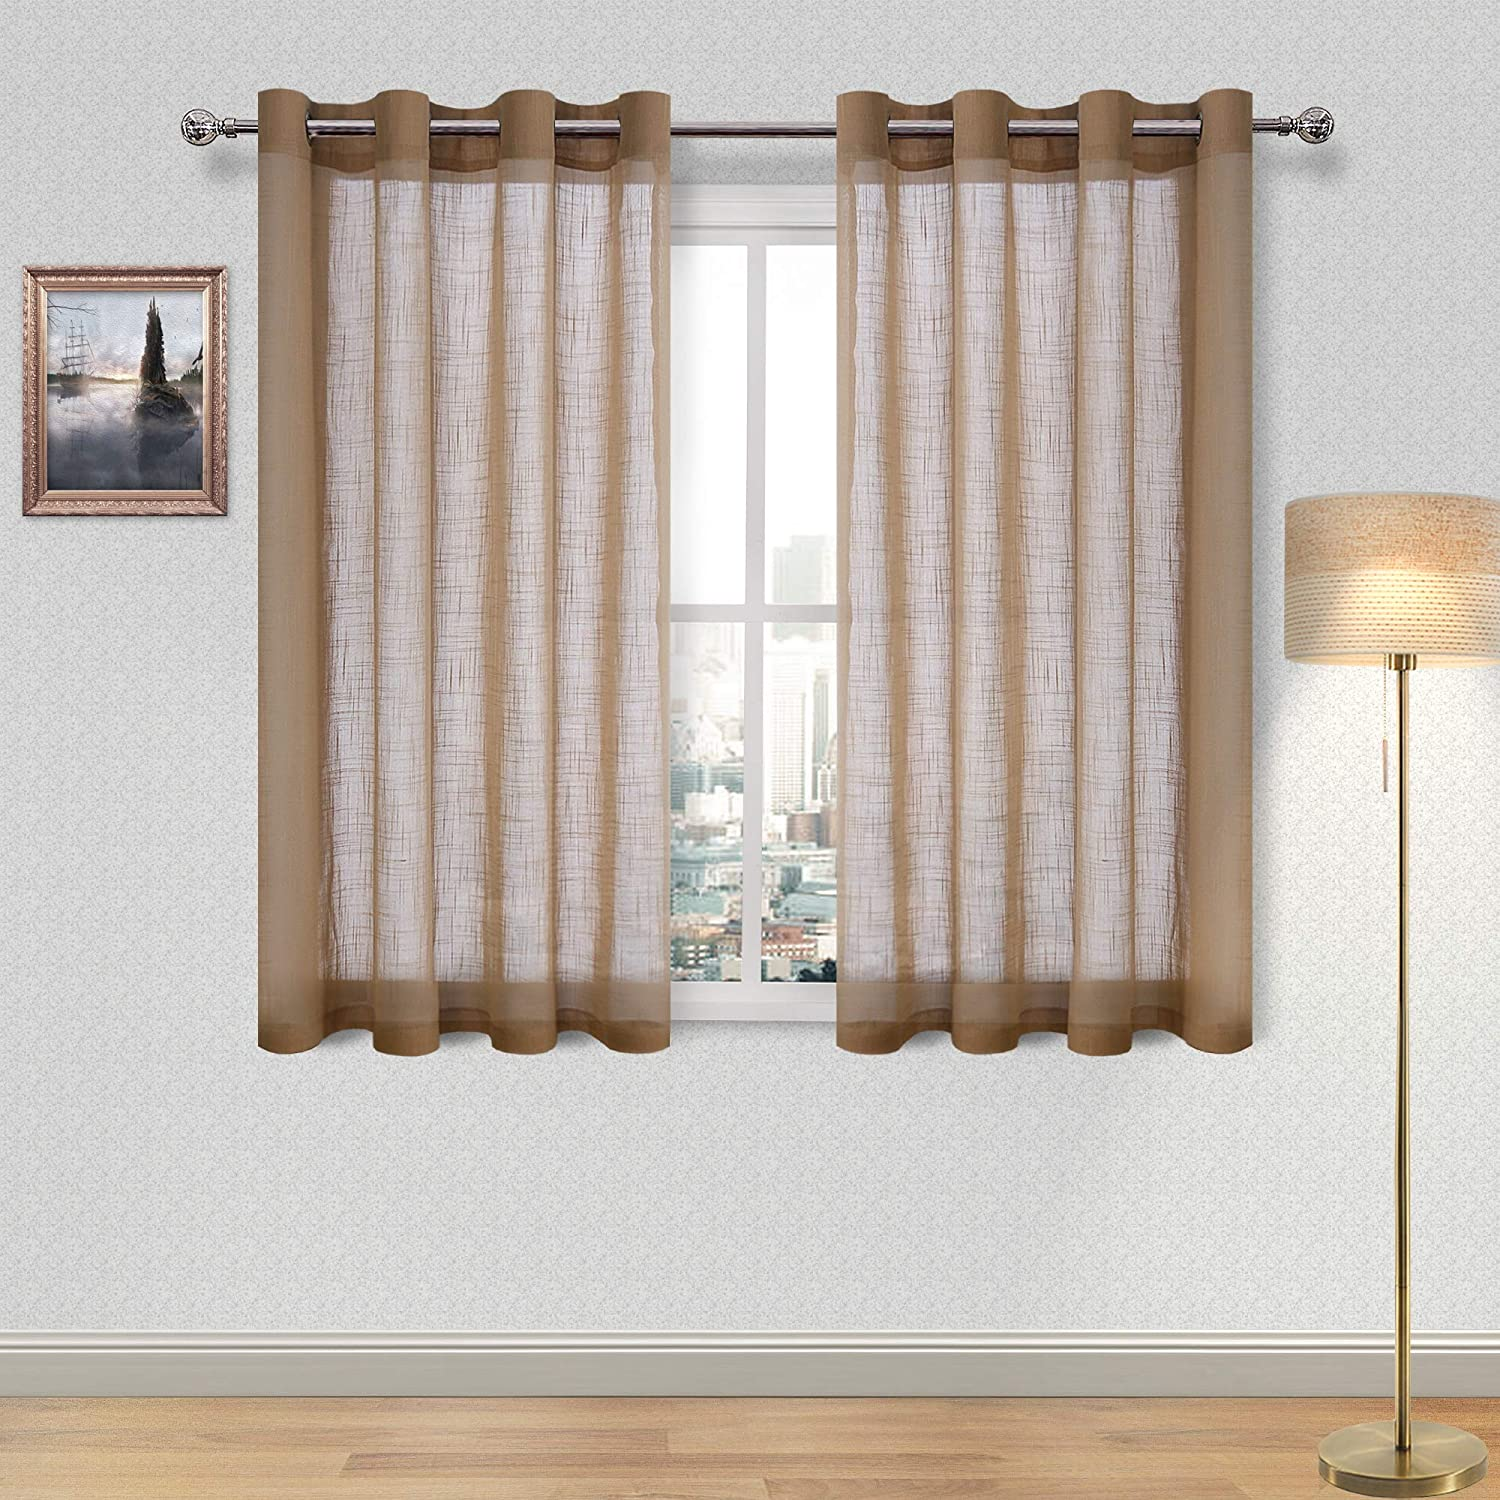 DWCN Faux Linen Brown Sheer Curtains - Window Grommet Voile Curtains for Bedroom Living Room 52 x 54 Inch Length, Set of 2 Curtain Panels